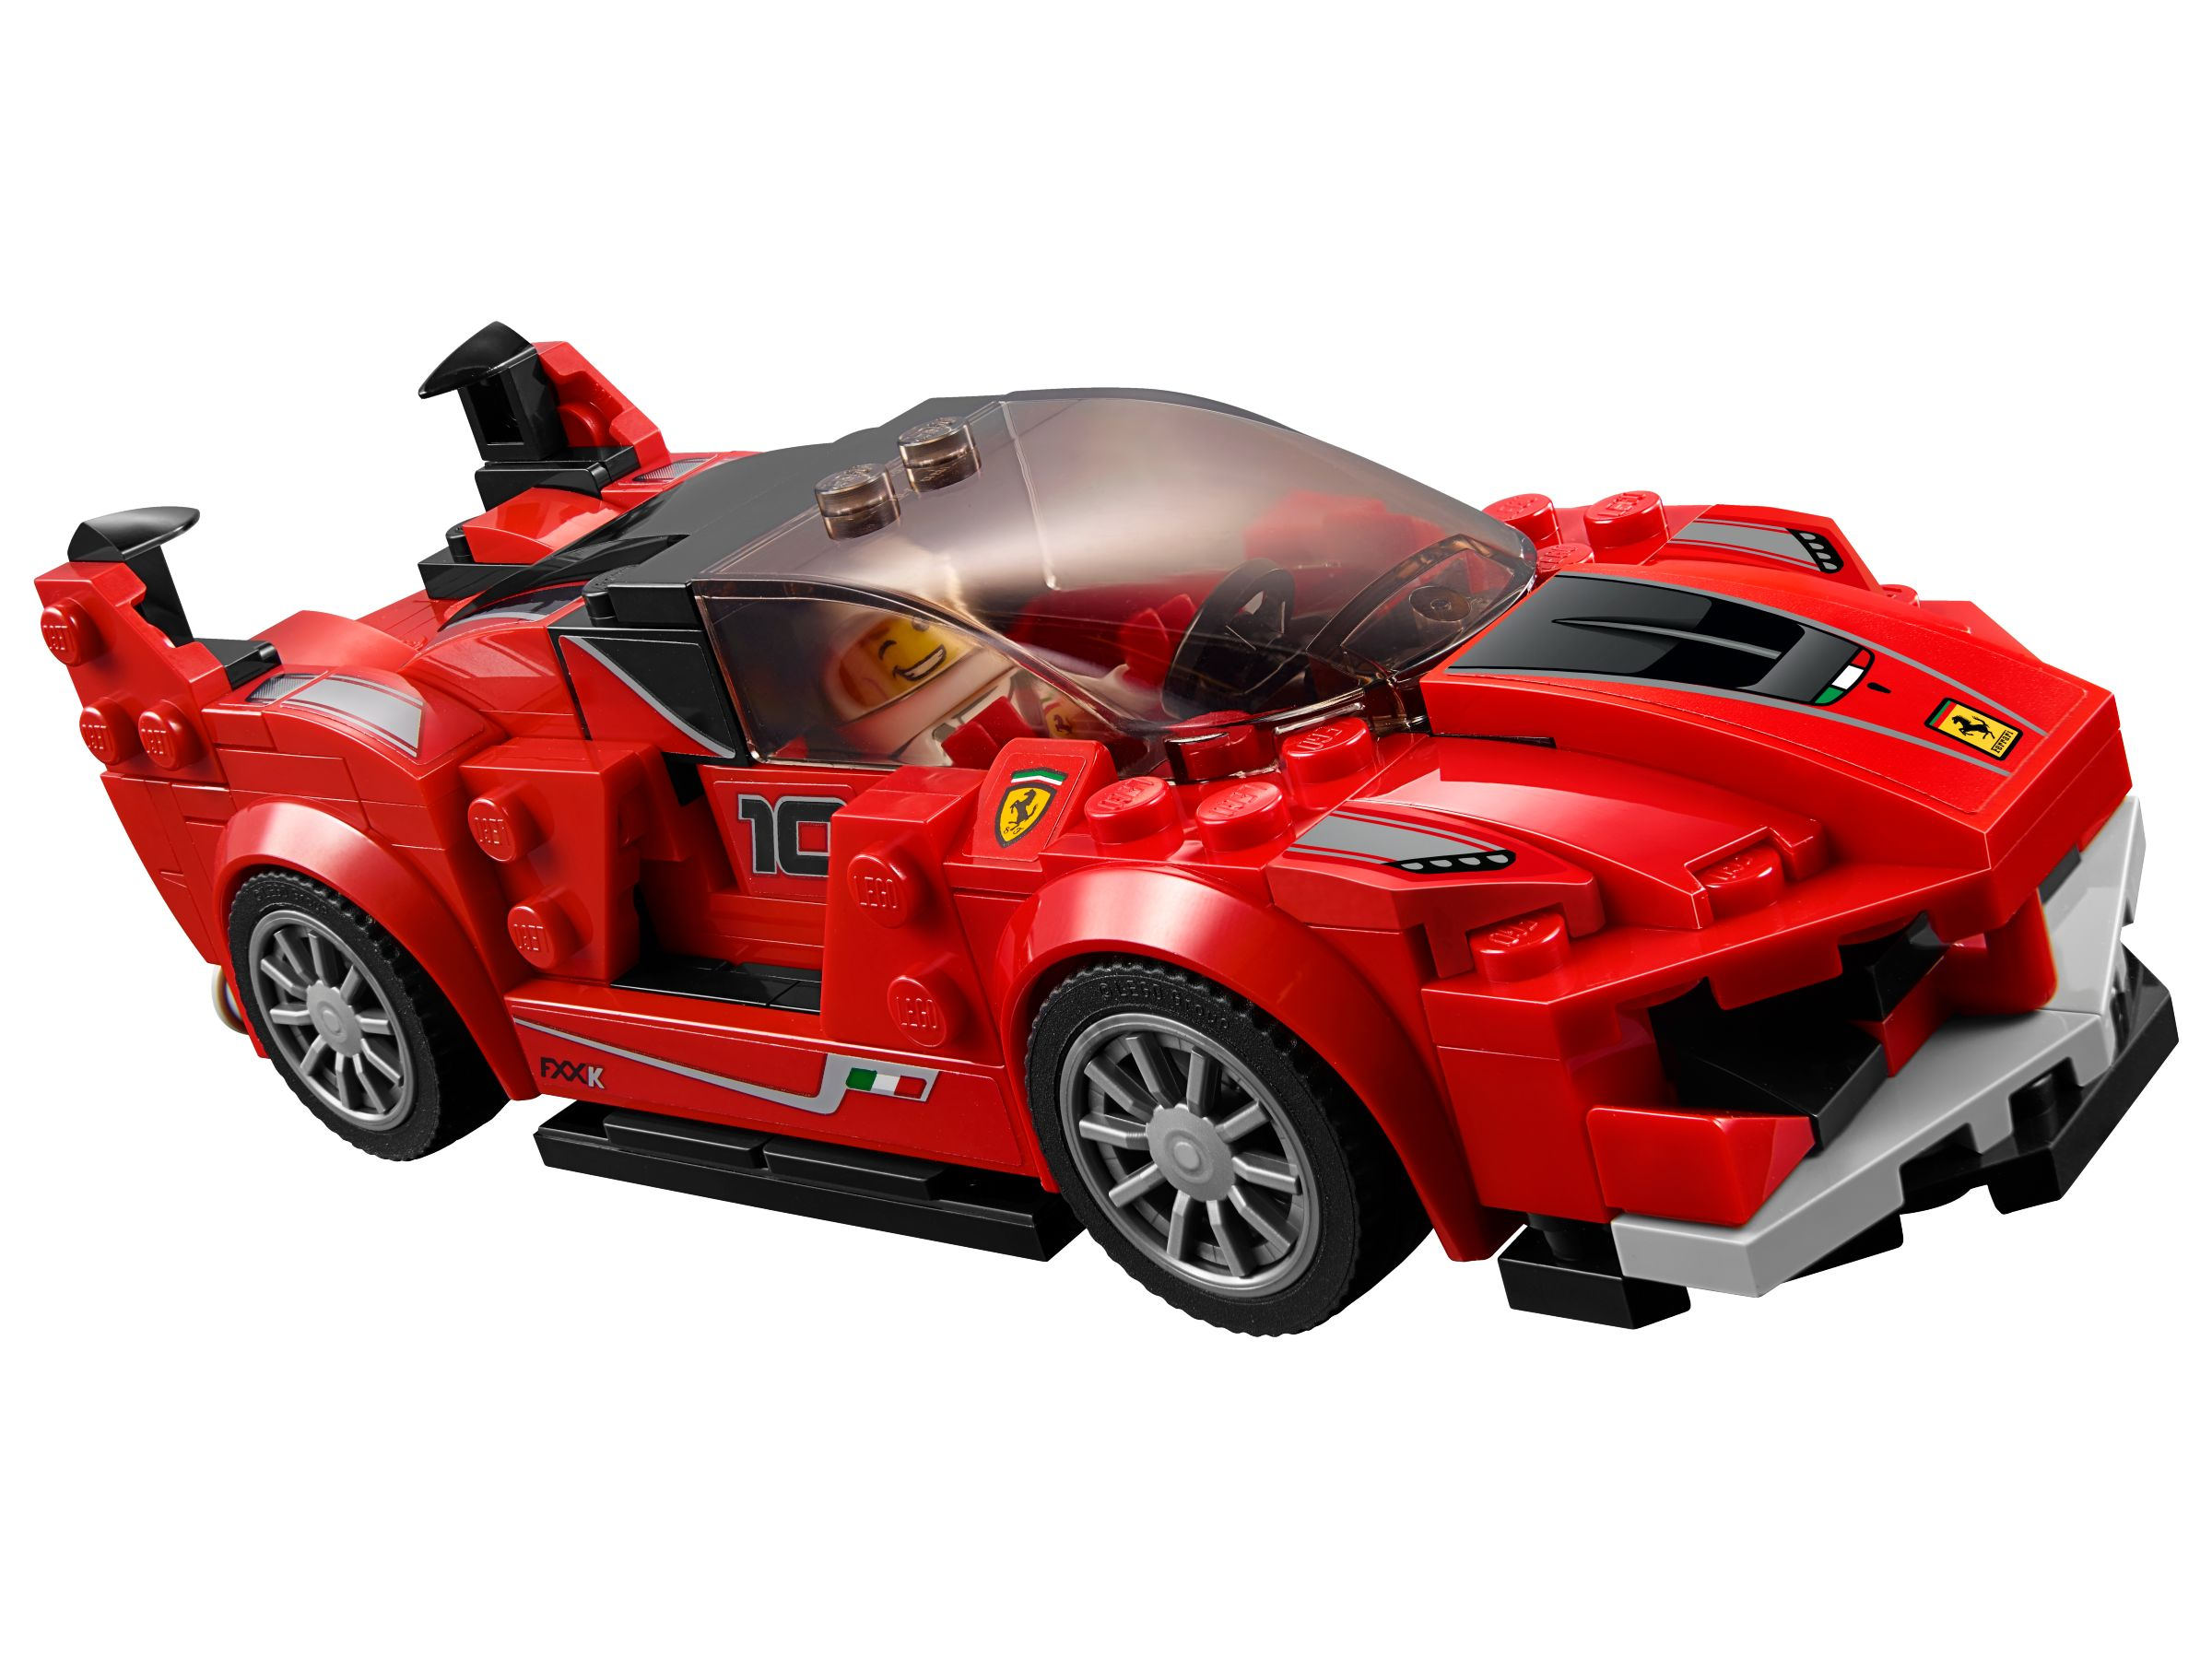 lego 75882 ferrari fxx k entwicklungszentrum speed champions 2017 ferrari fxx k. Black Bedroom Furniture Sets. Home Design Ideas